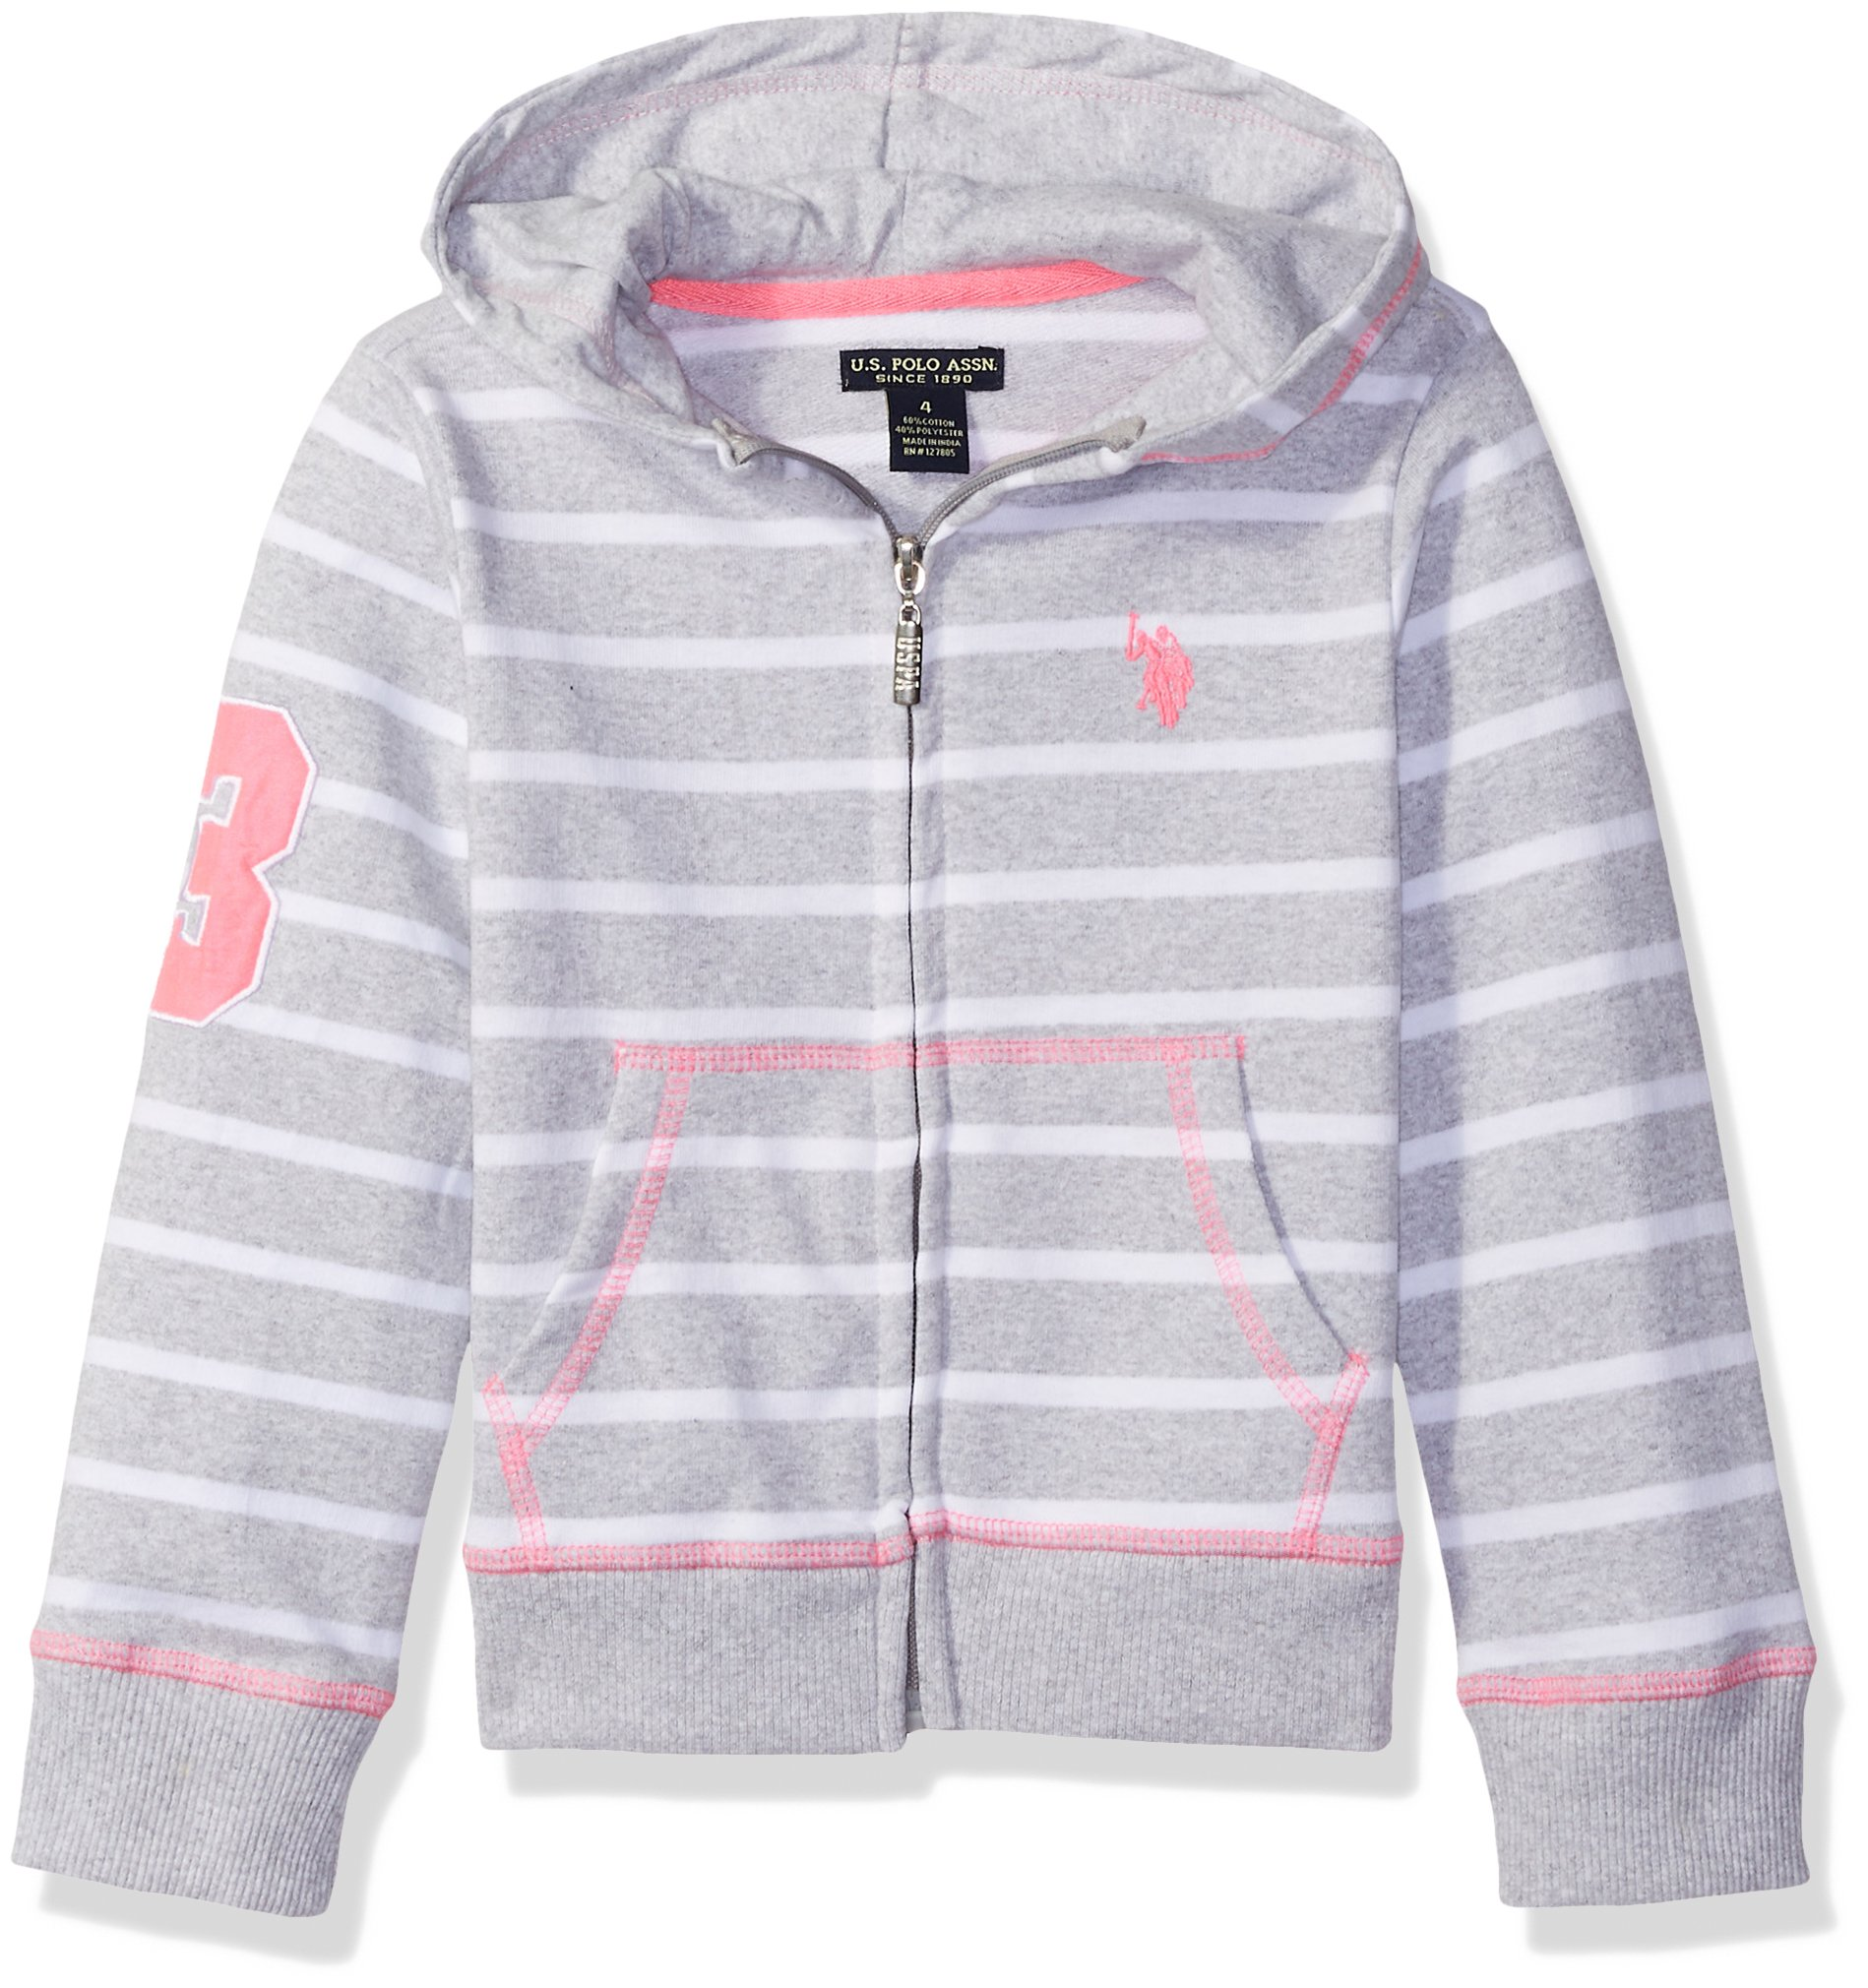 U.S. Polo Assn.. Toddler Girls' Long Sleeve French Terry Hoodie, with White Stripes Light Heather Gray, 2T